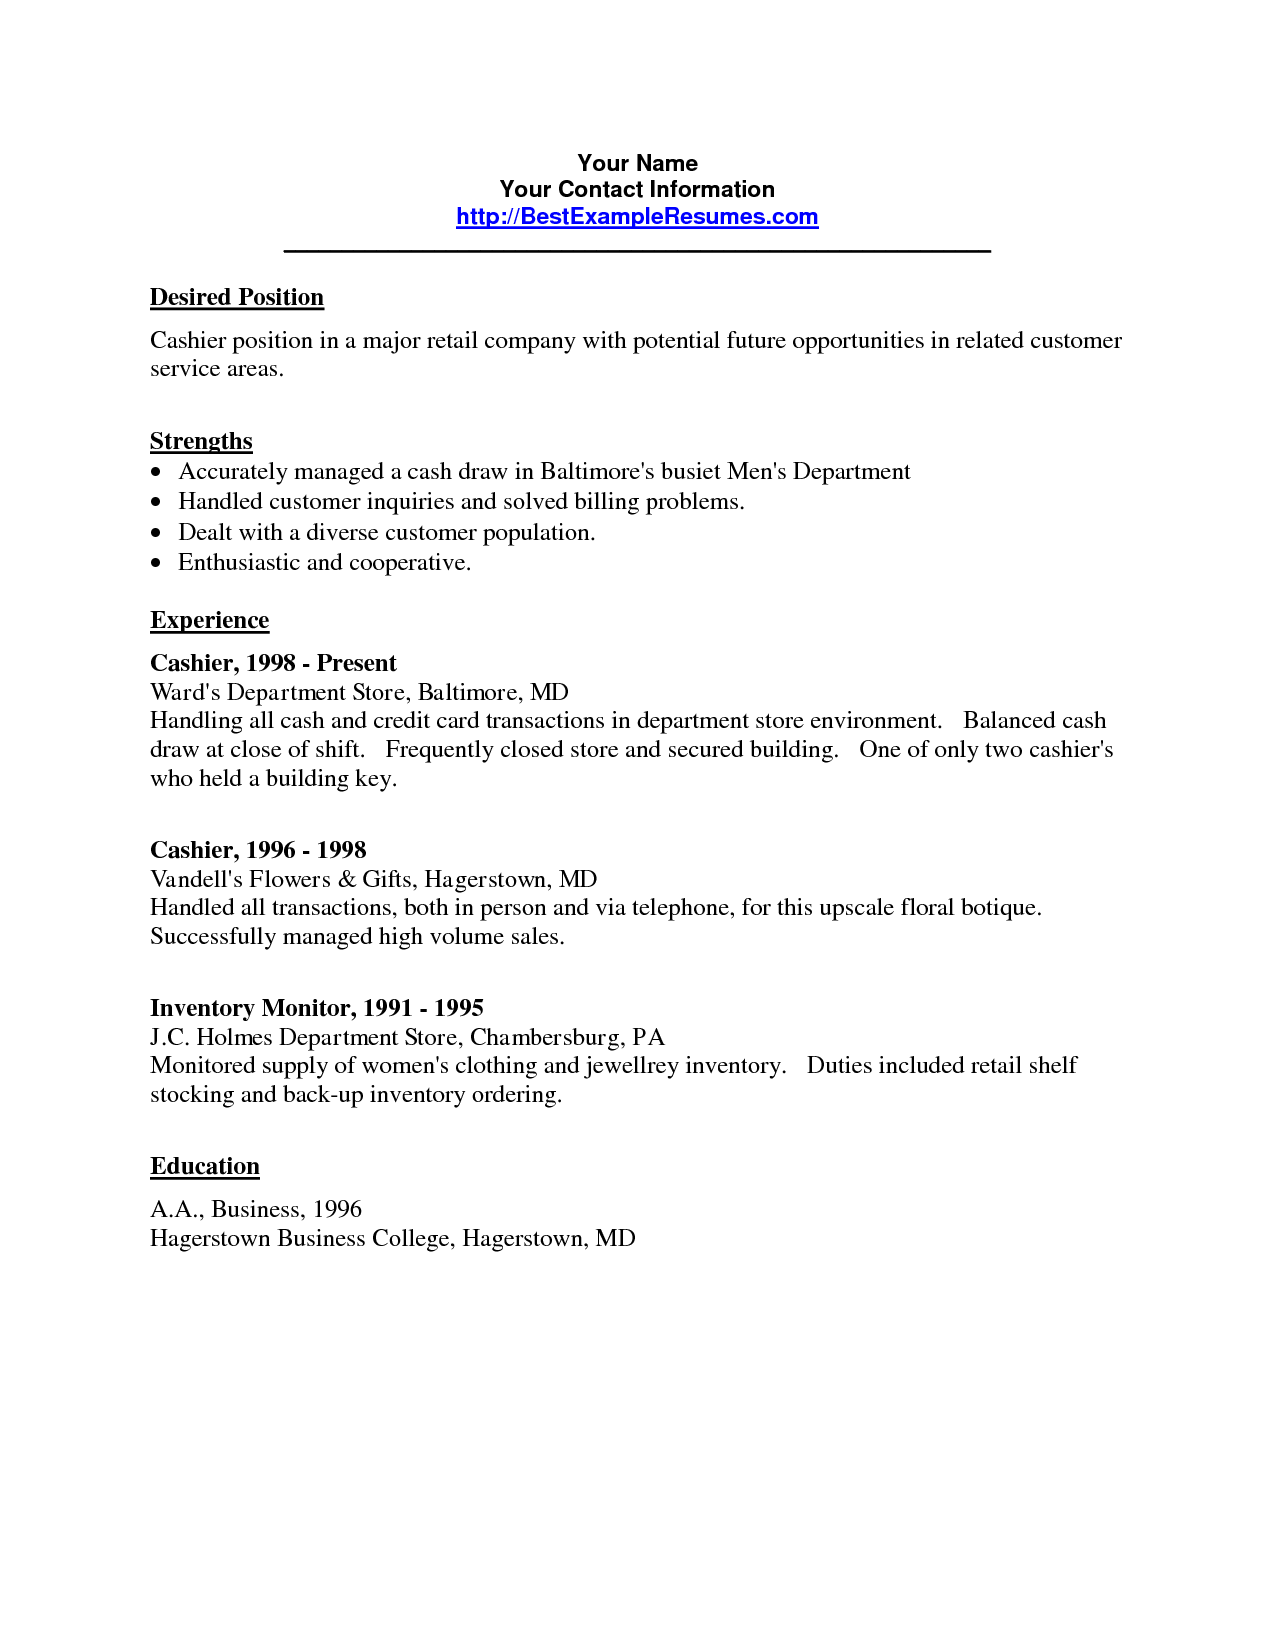 Cashier Description For Resume Job Resume Sample Cashier Examples For Application Impressive